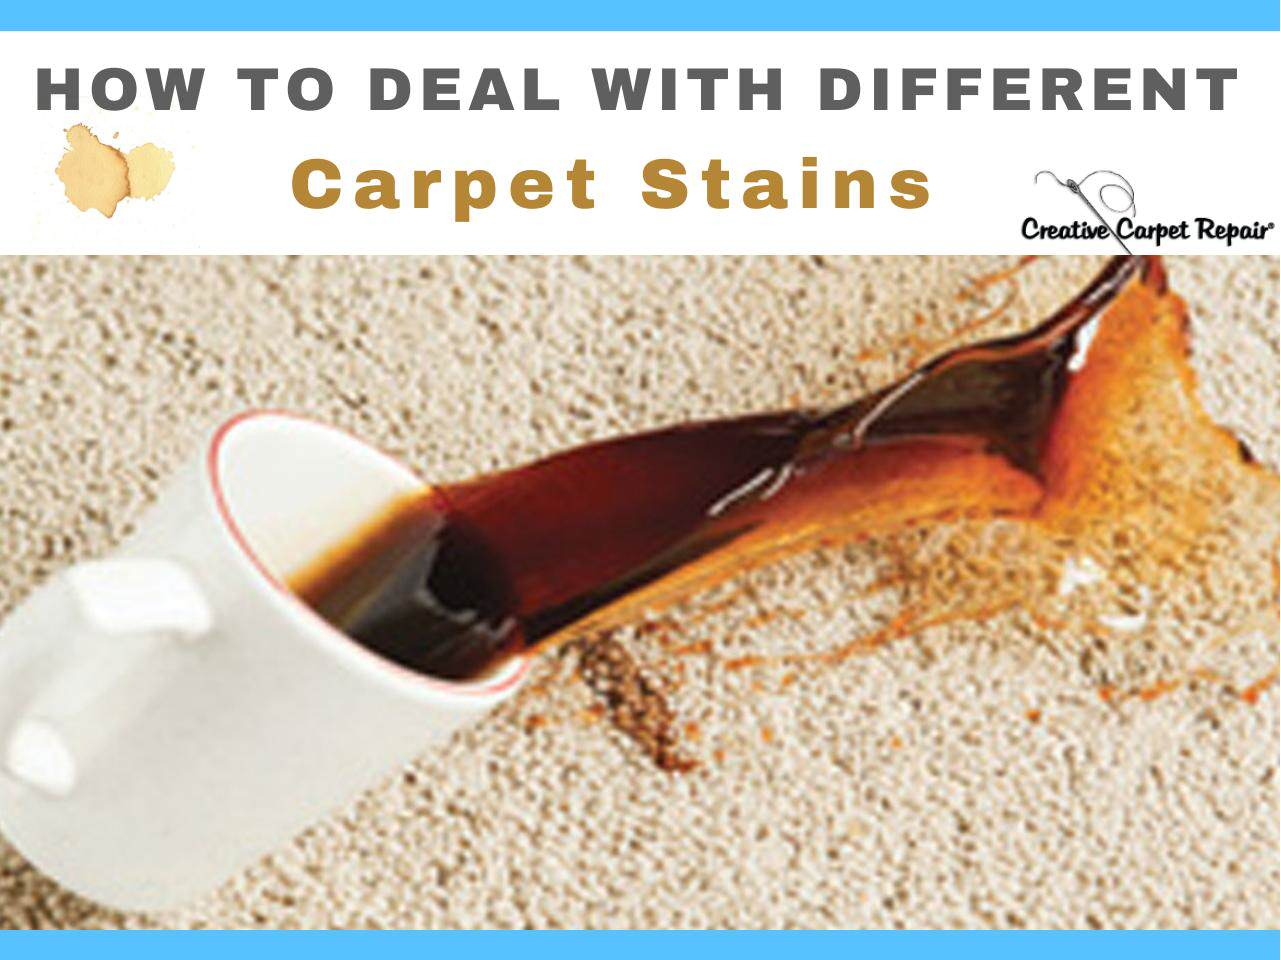 How to Remove Different Carpet Stains - DIY Techniques